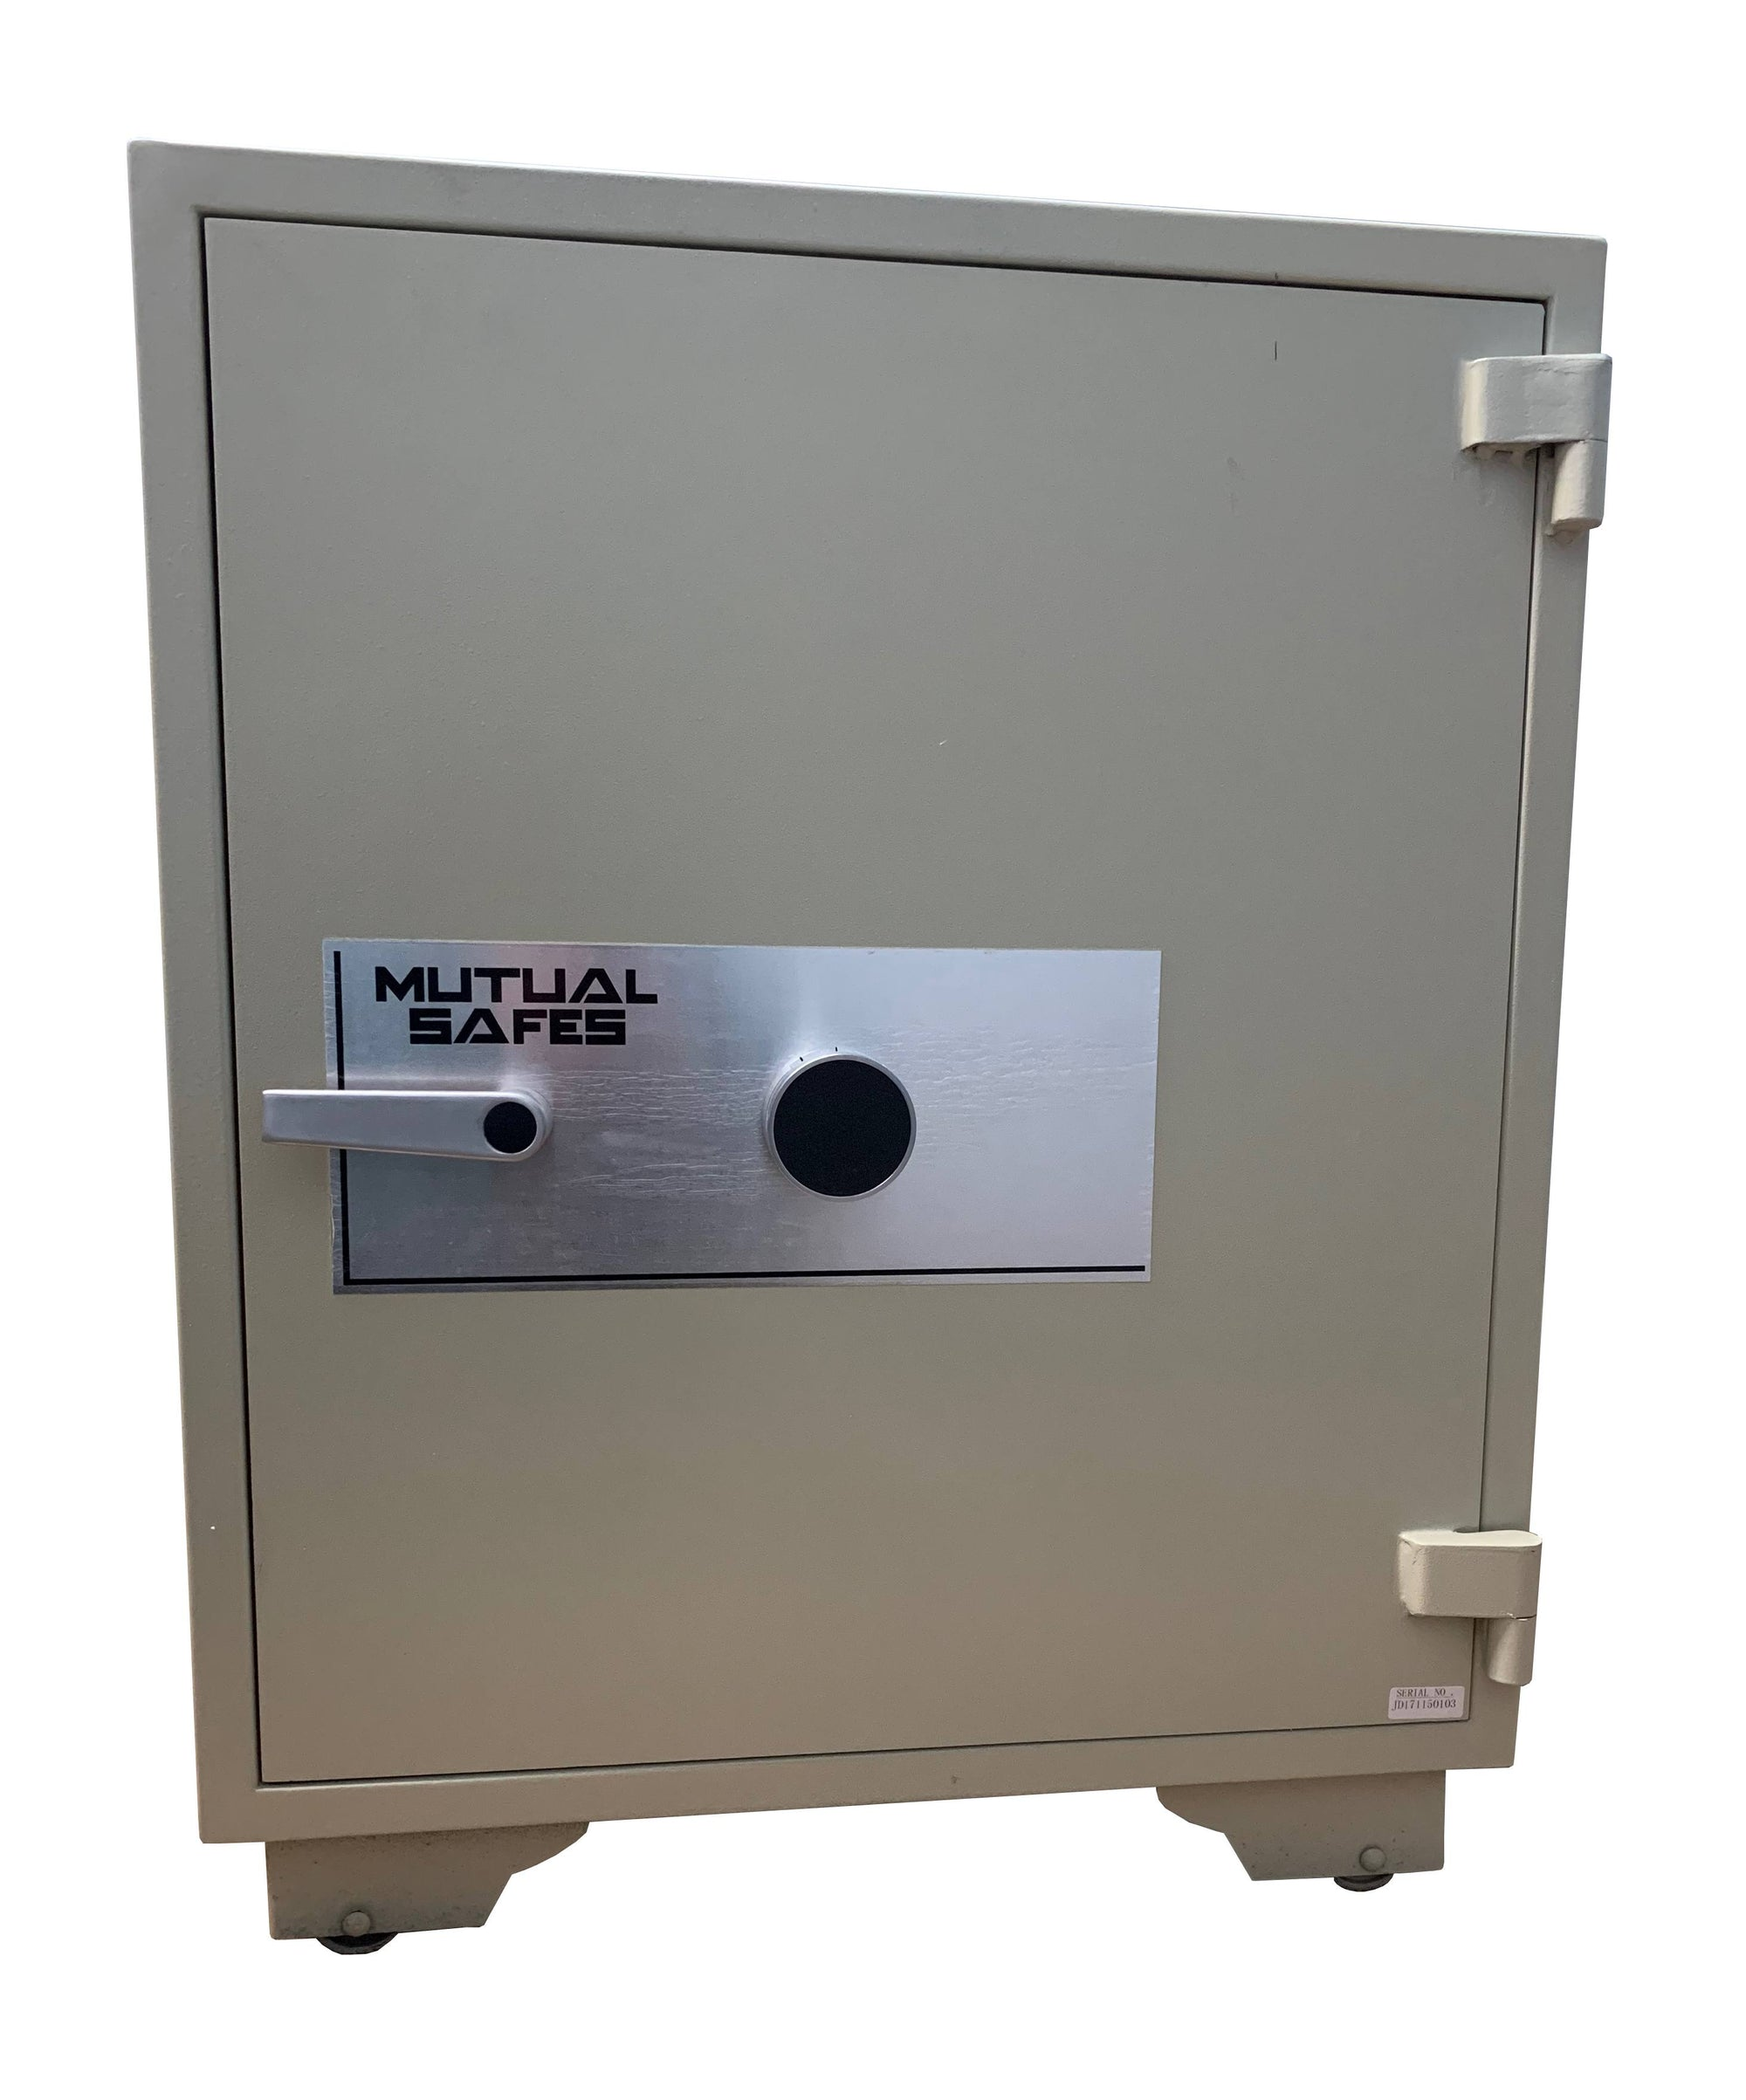 Burglar Fire Safe Products - Mutual RS-4 Burglar & Fire Safe